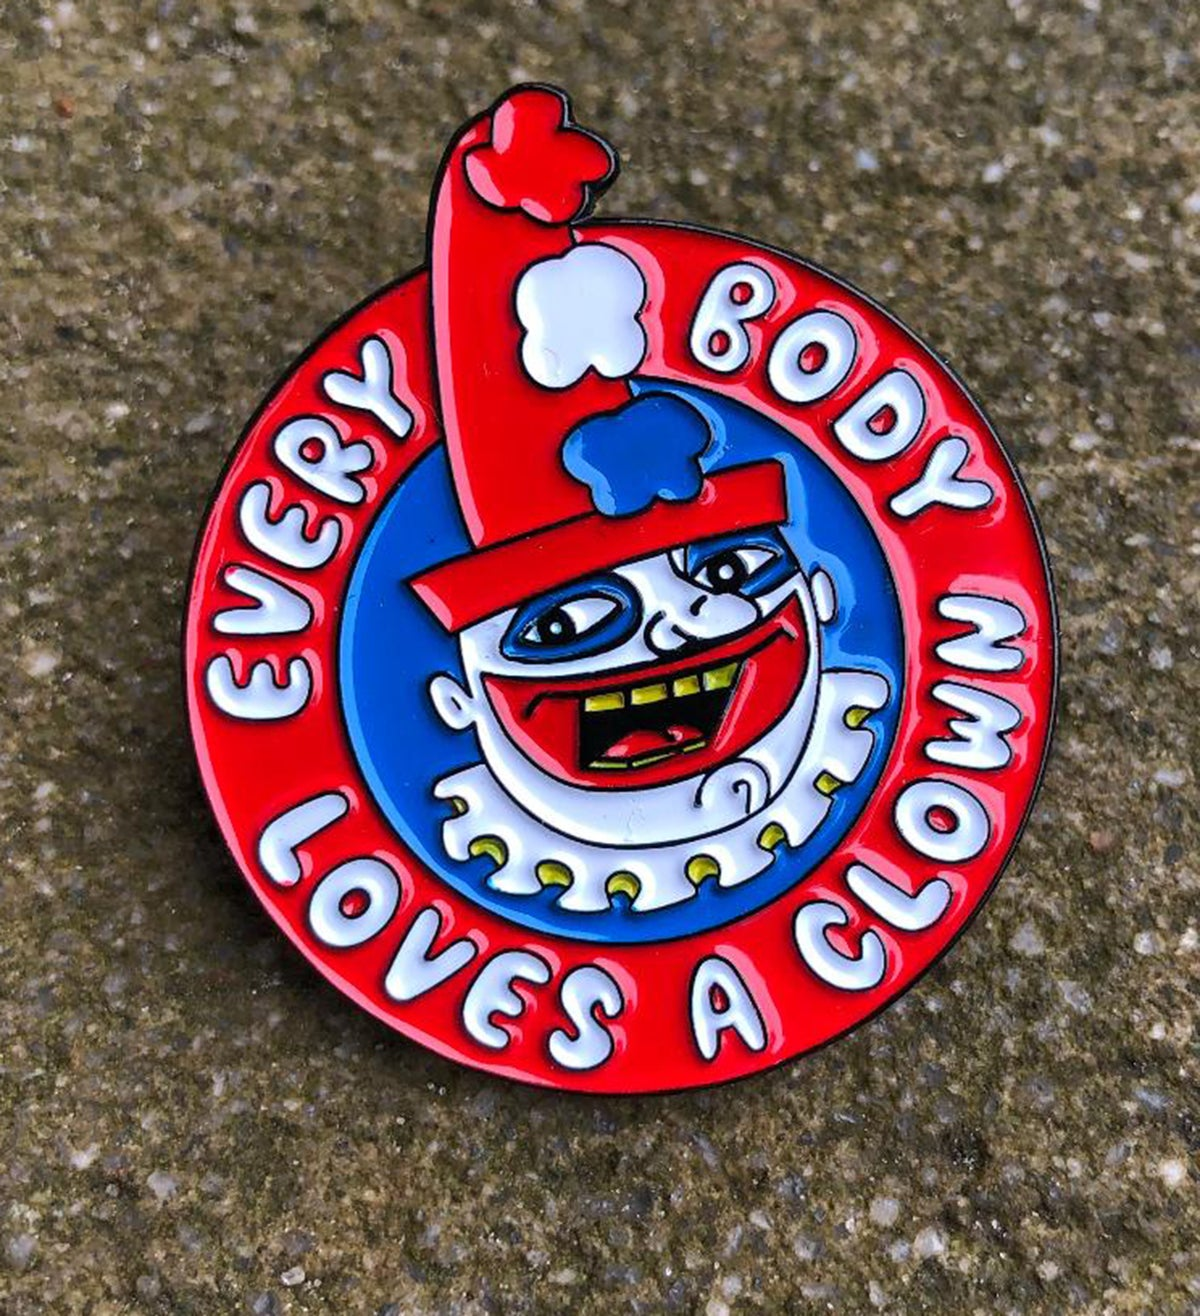 """Everybody Loves a Clown"" John Wayne Gacy/Pogo 1.75"" Enamel Pin"